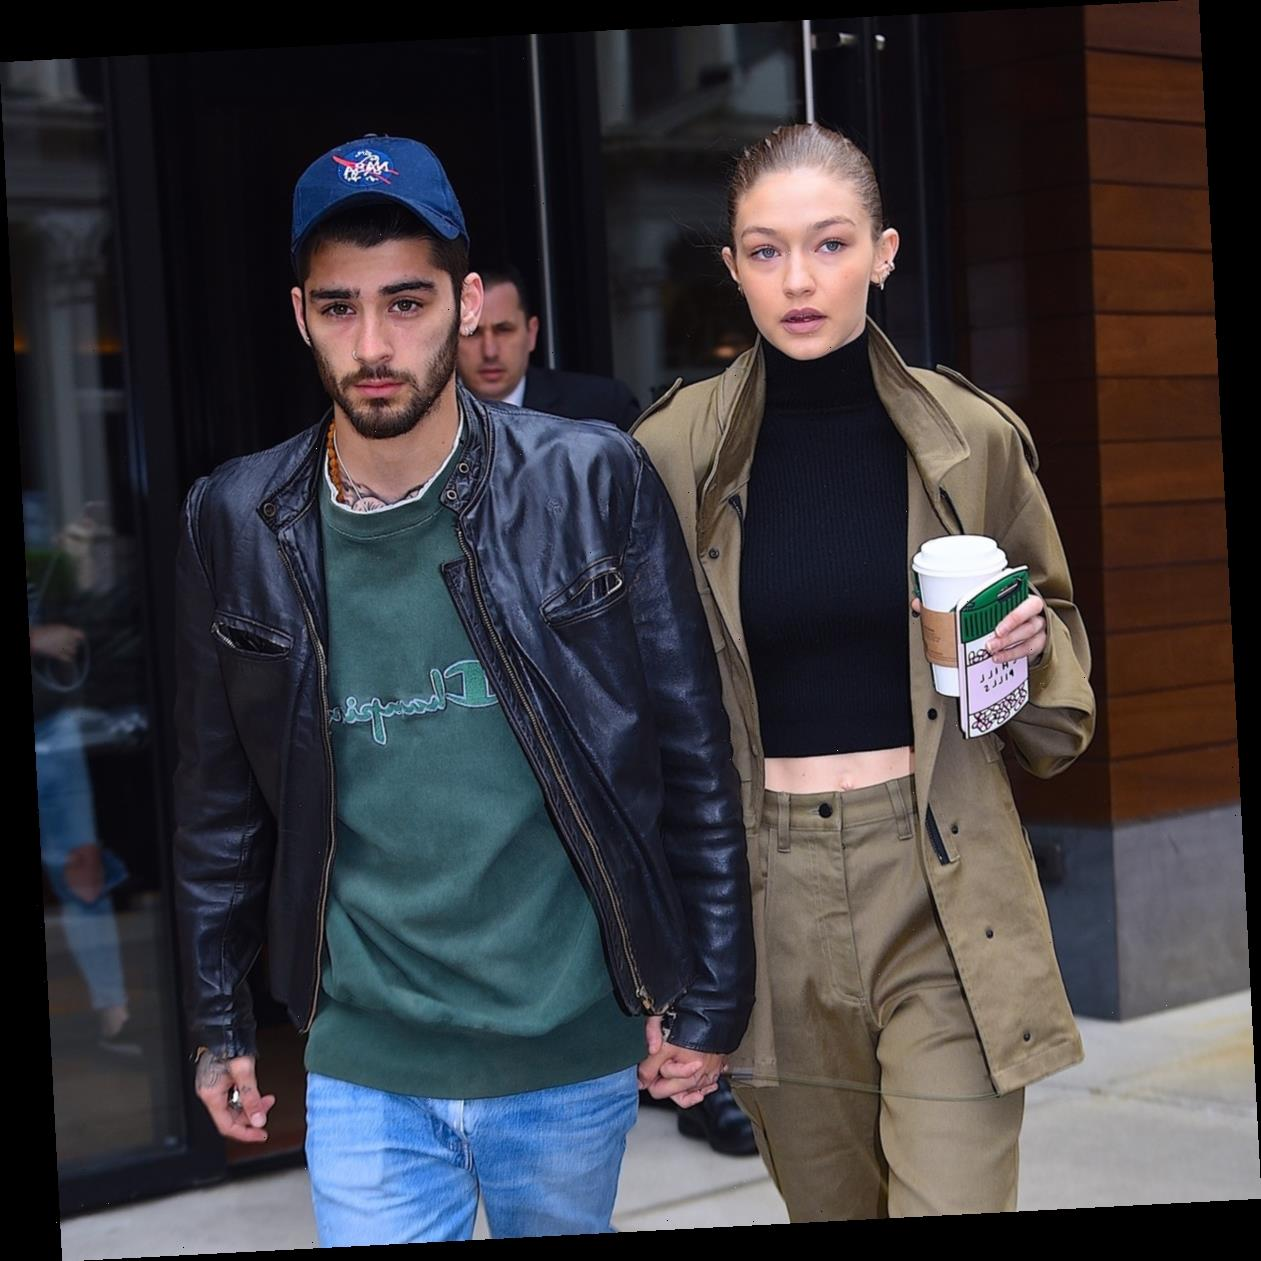 Gigi Hadid's Valentine's Day Post Of Zayn Malik Appears To Confirm They Are Dating Again